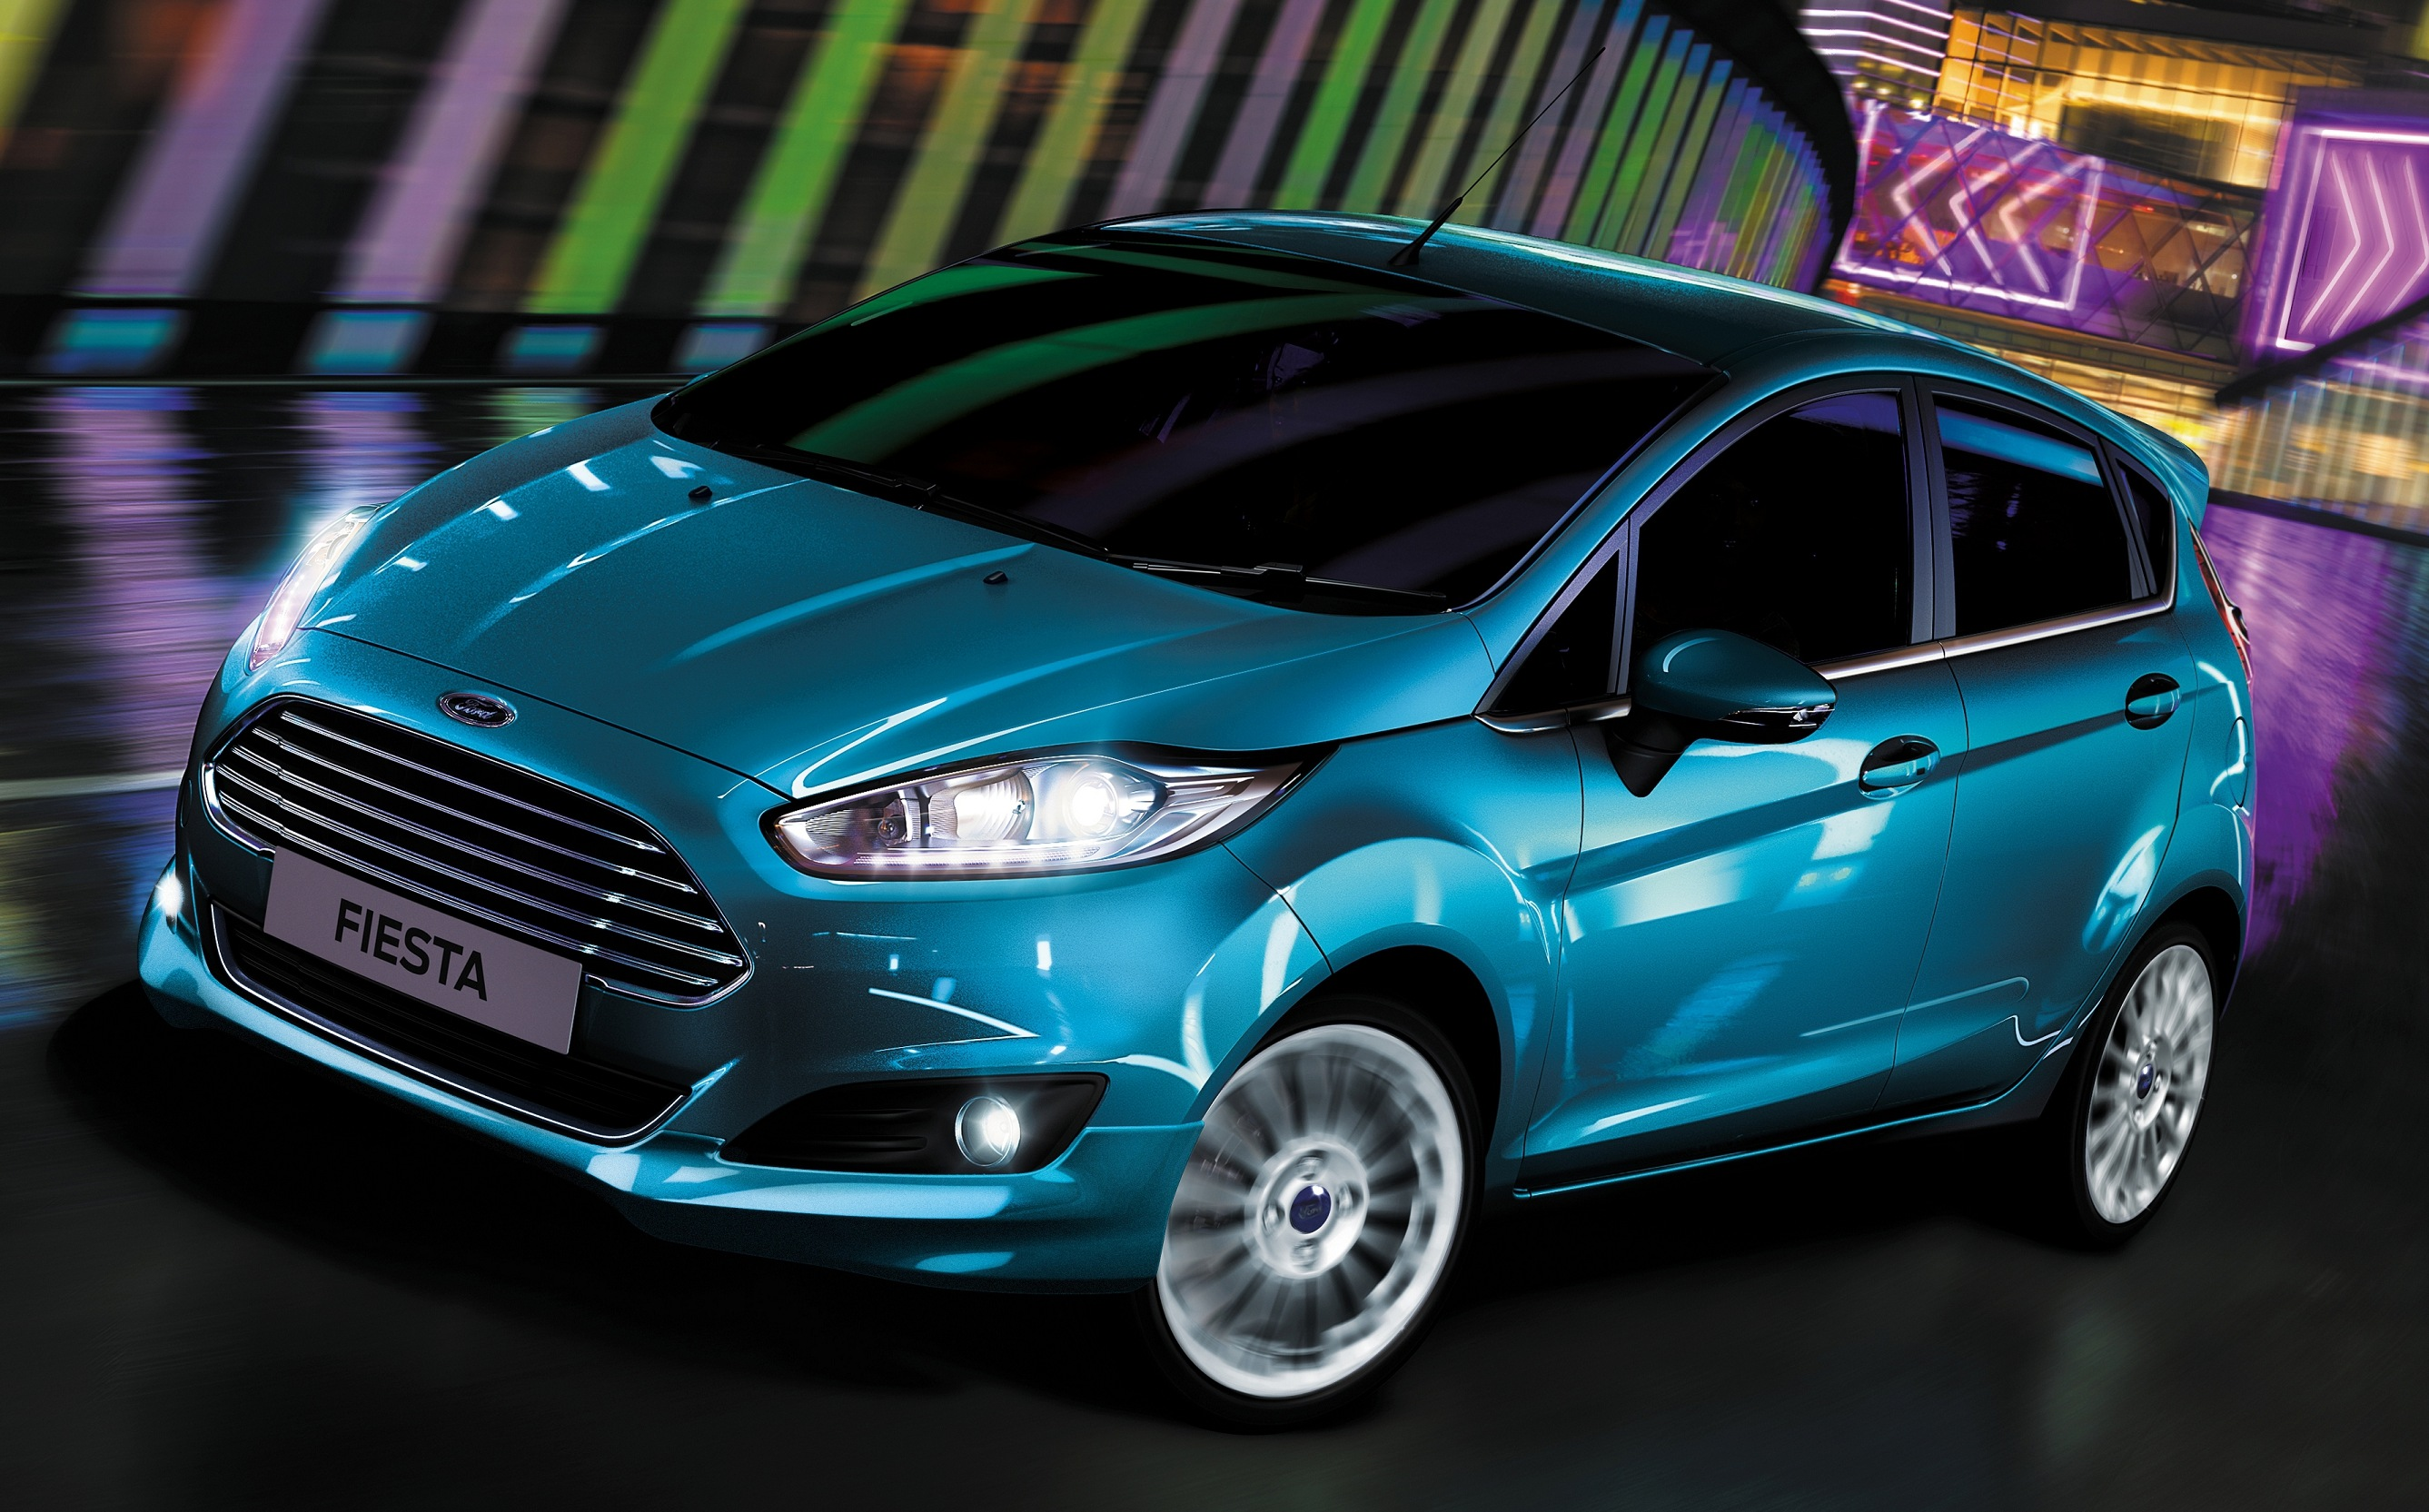 2013 ford fiesta facelift 1 5 ti vct sport to be launched on sept 28. Black Bedroom Furniture Sets. Home Design Ideas